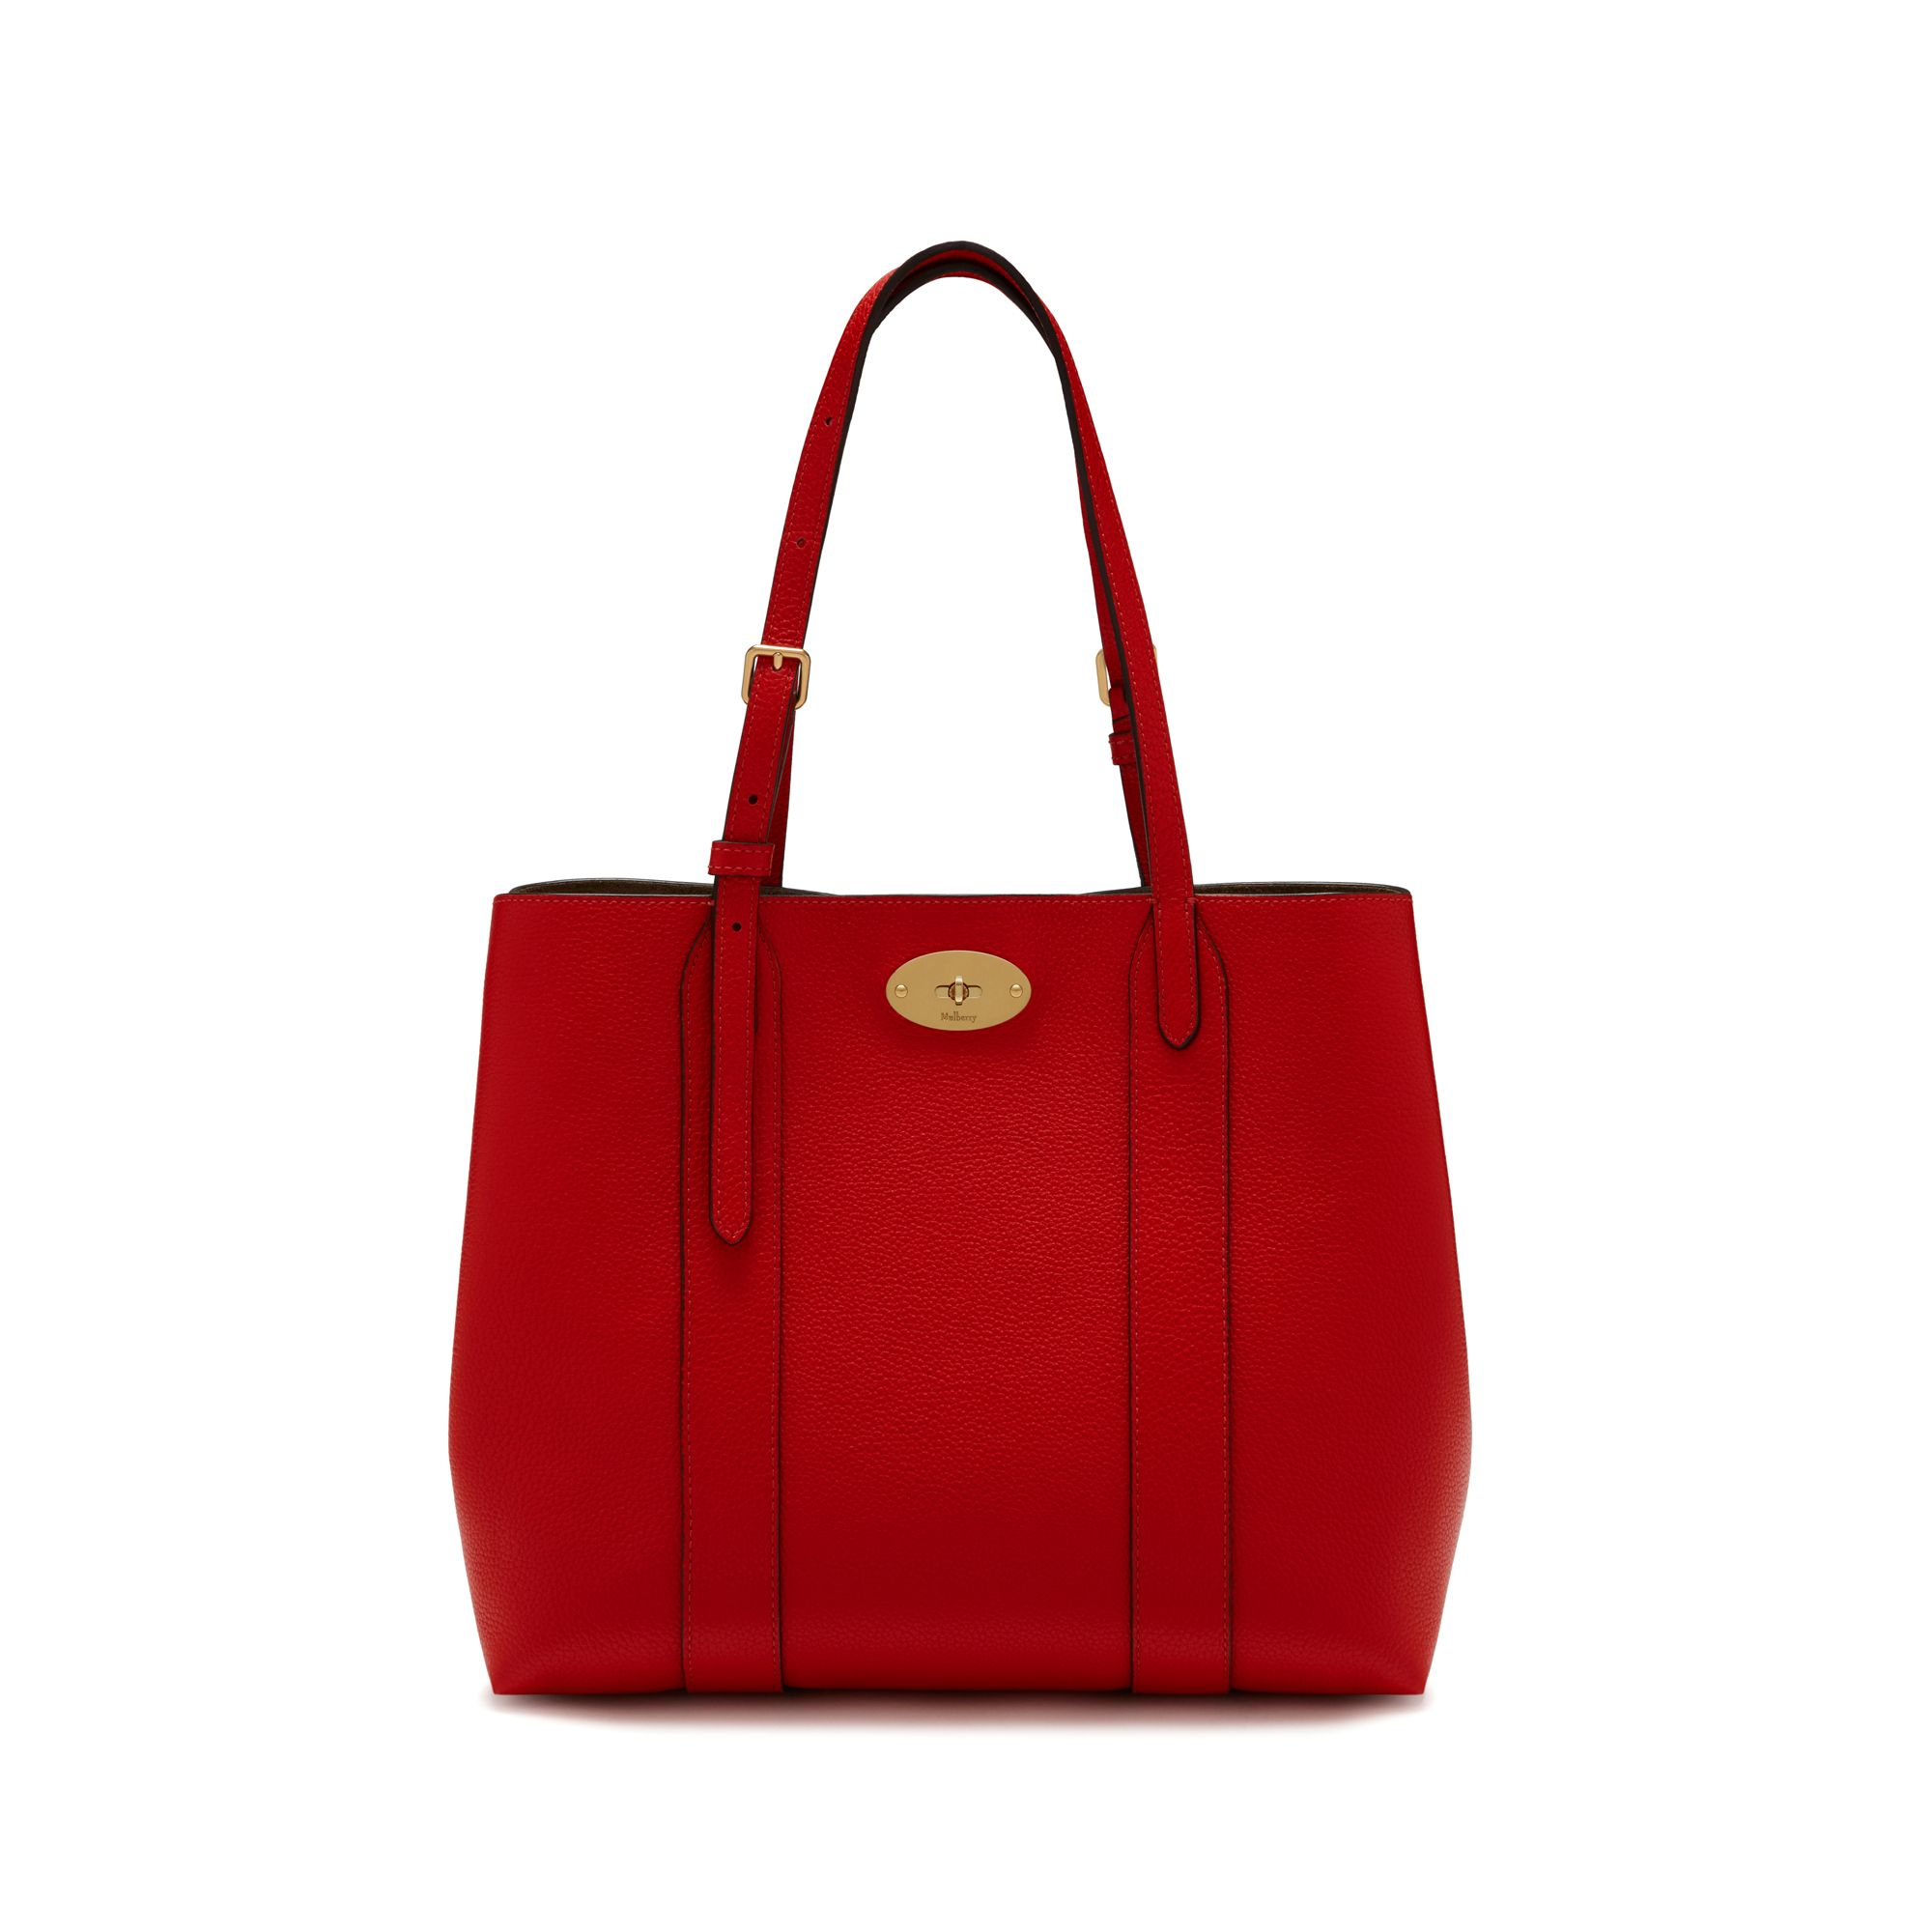 Forum on this topic: Shop The Mulberry Sale Now Before It's , shop-the-mulberry-sale-now-before-its/